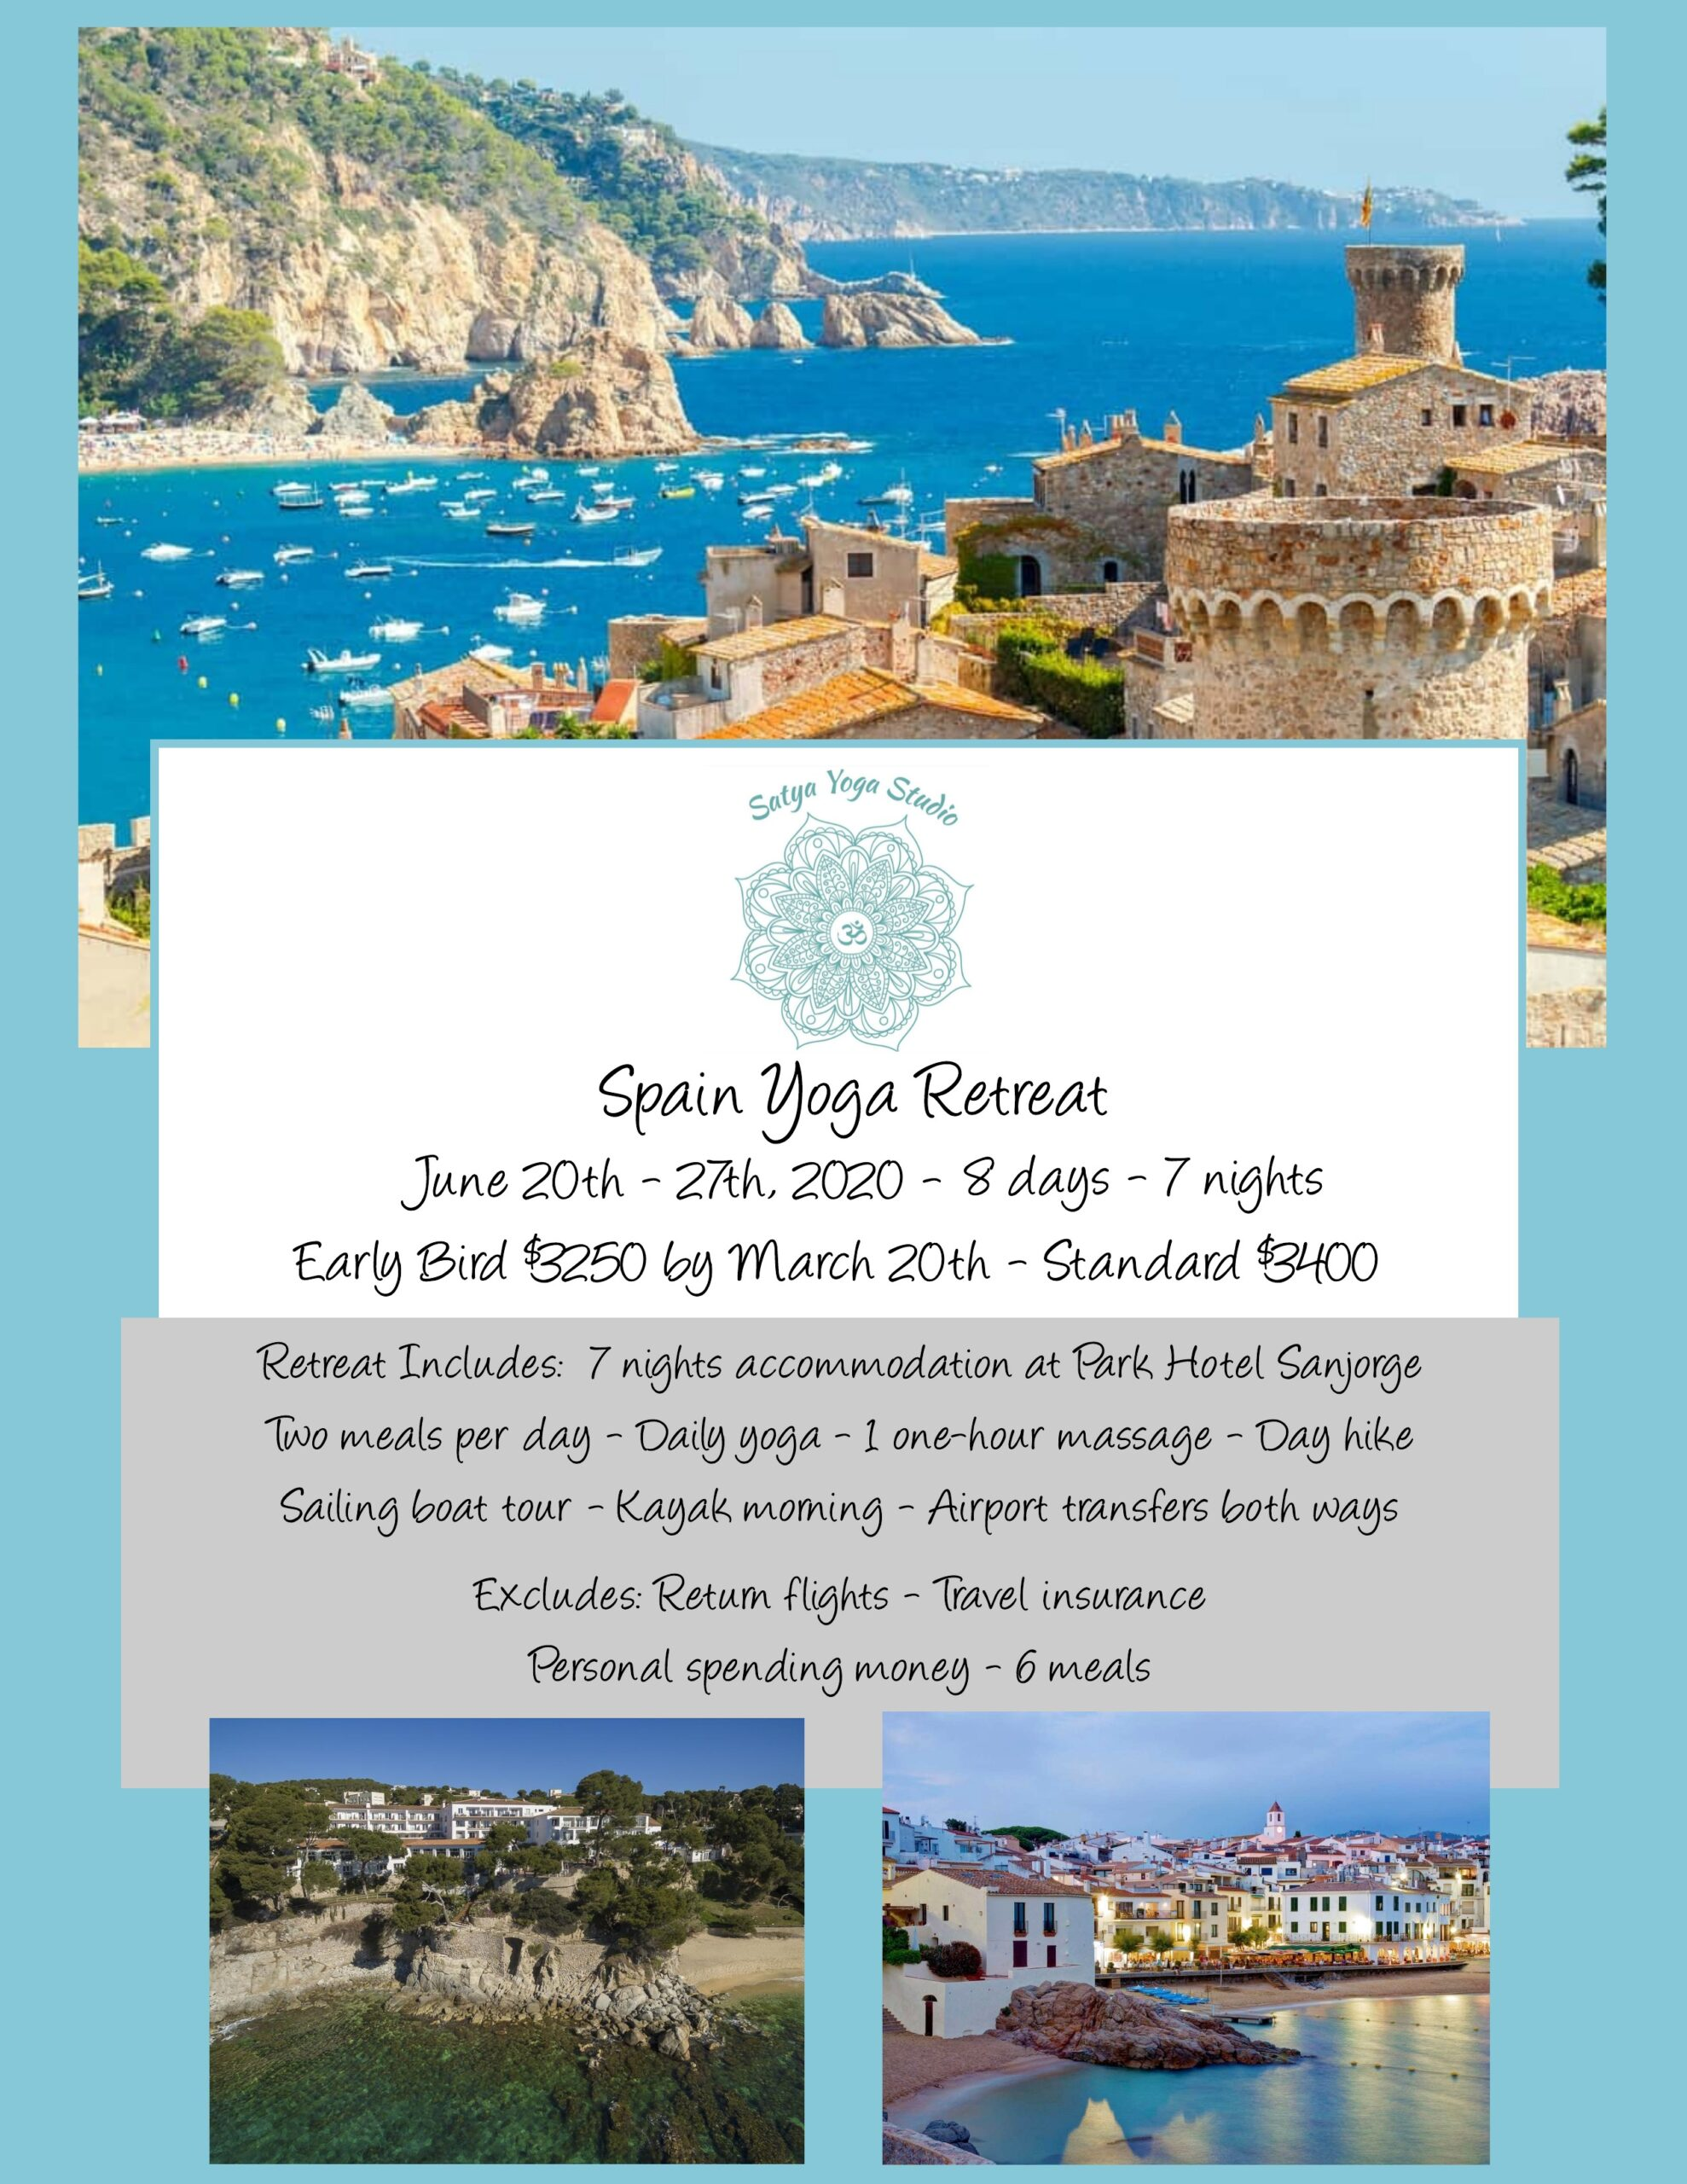 Spain Yoga Retreat -Website